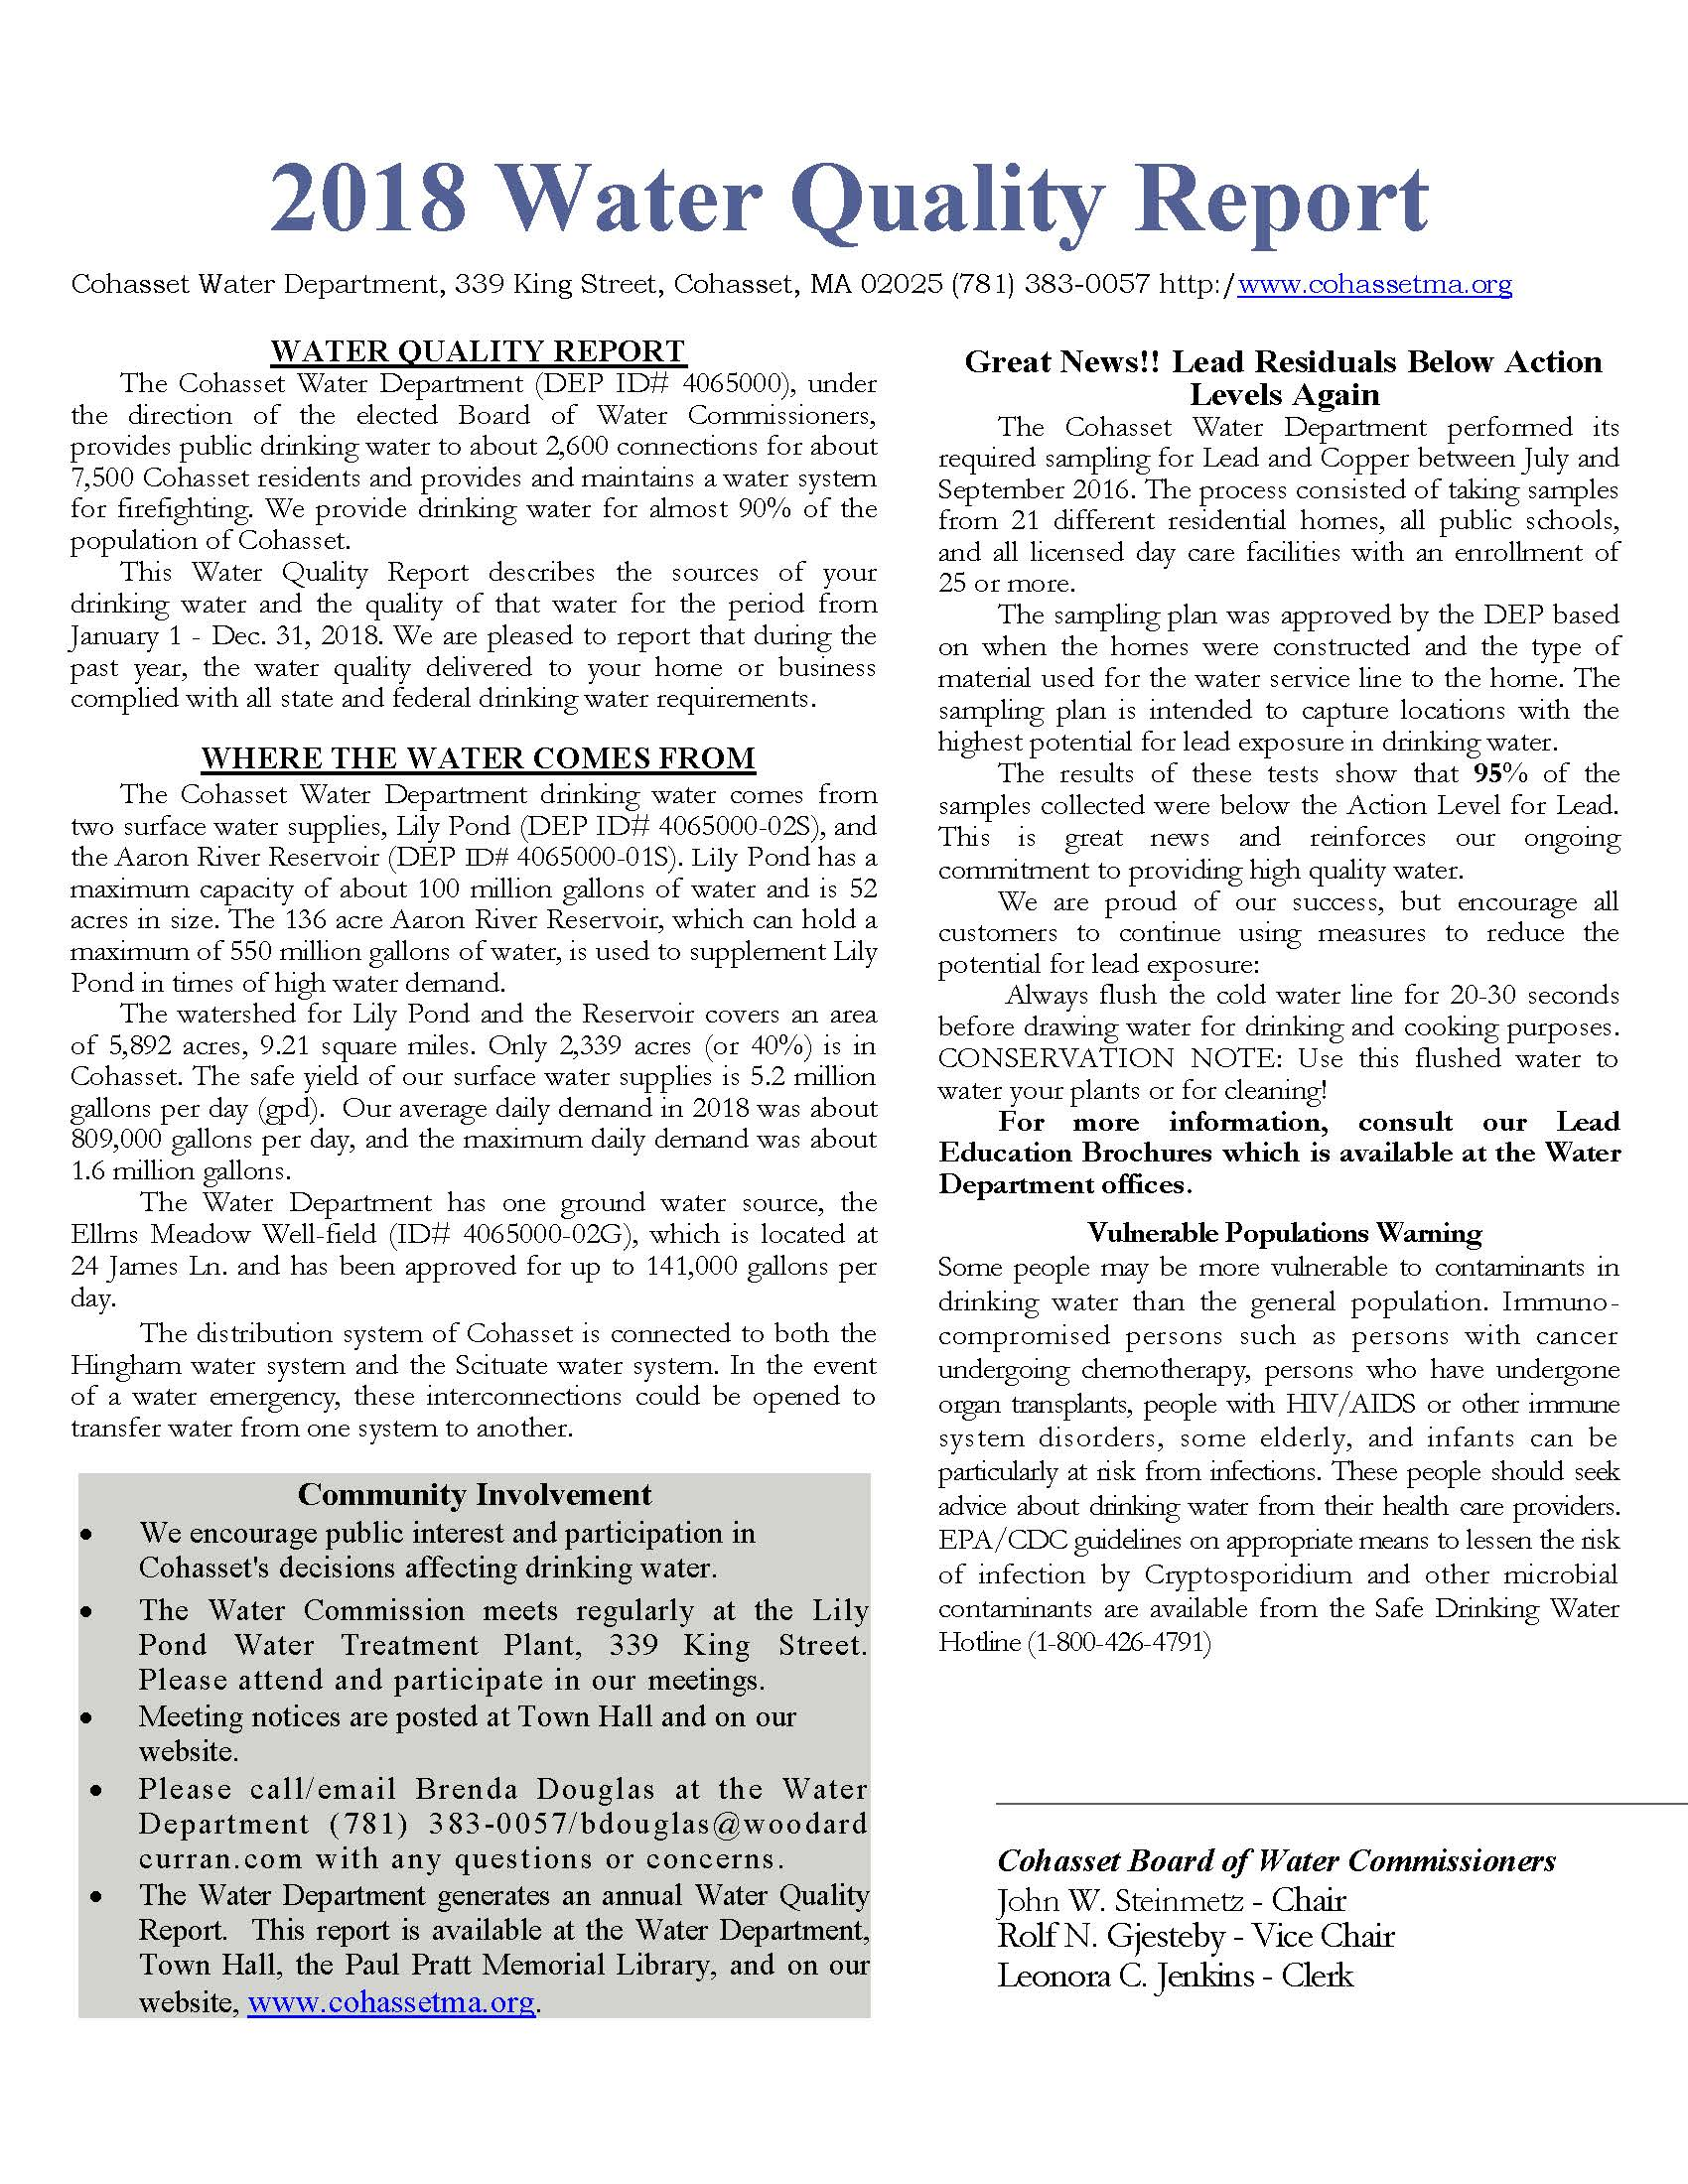 2018 CCR_Page_1